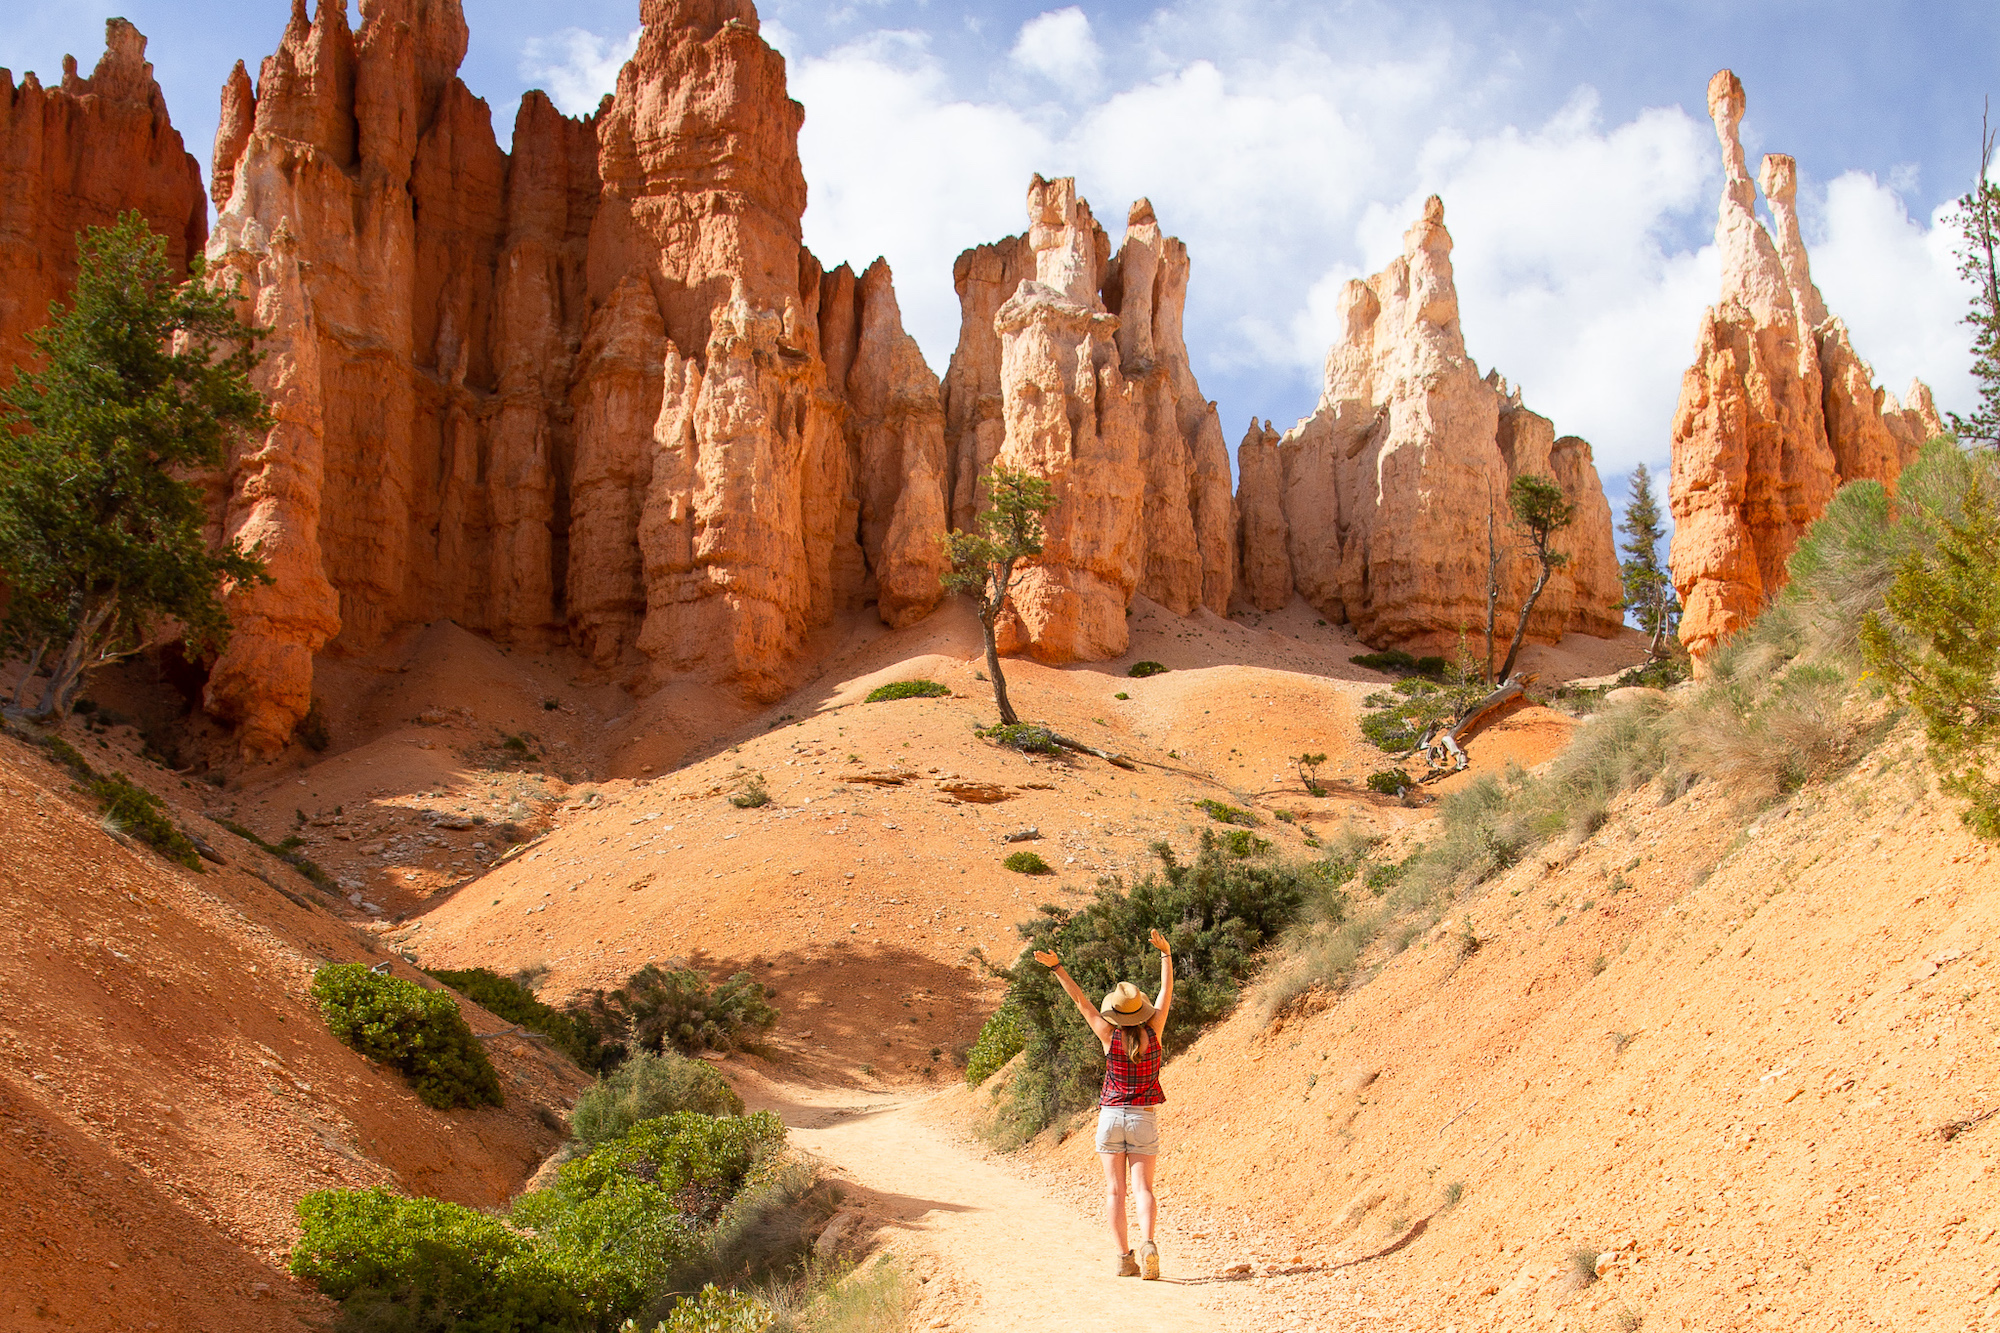 On the Peekaboo Loop Trail, Bryce Canyon National Park